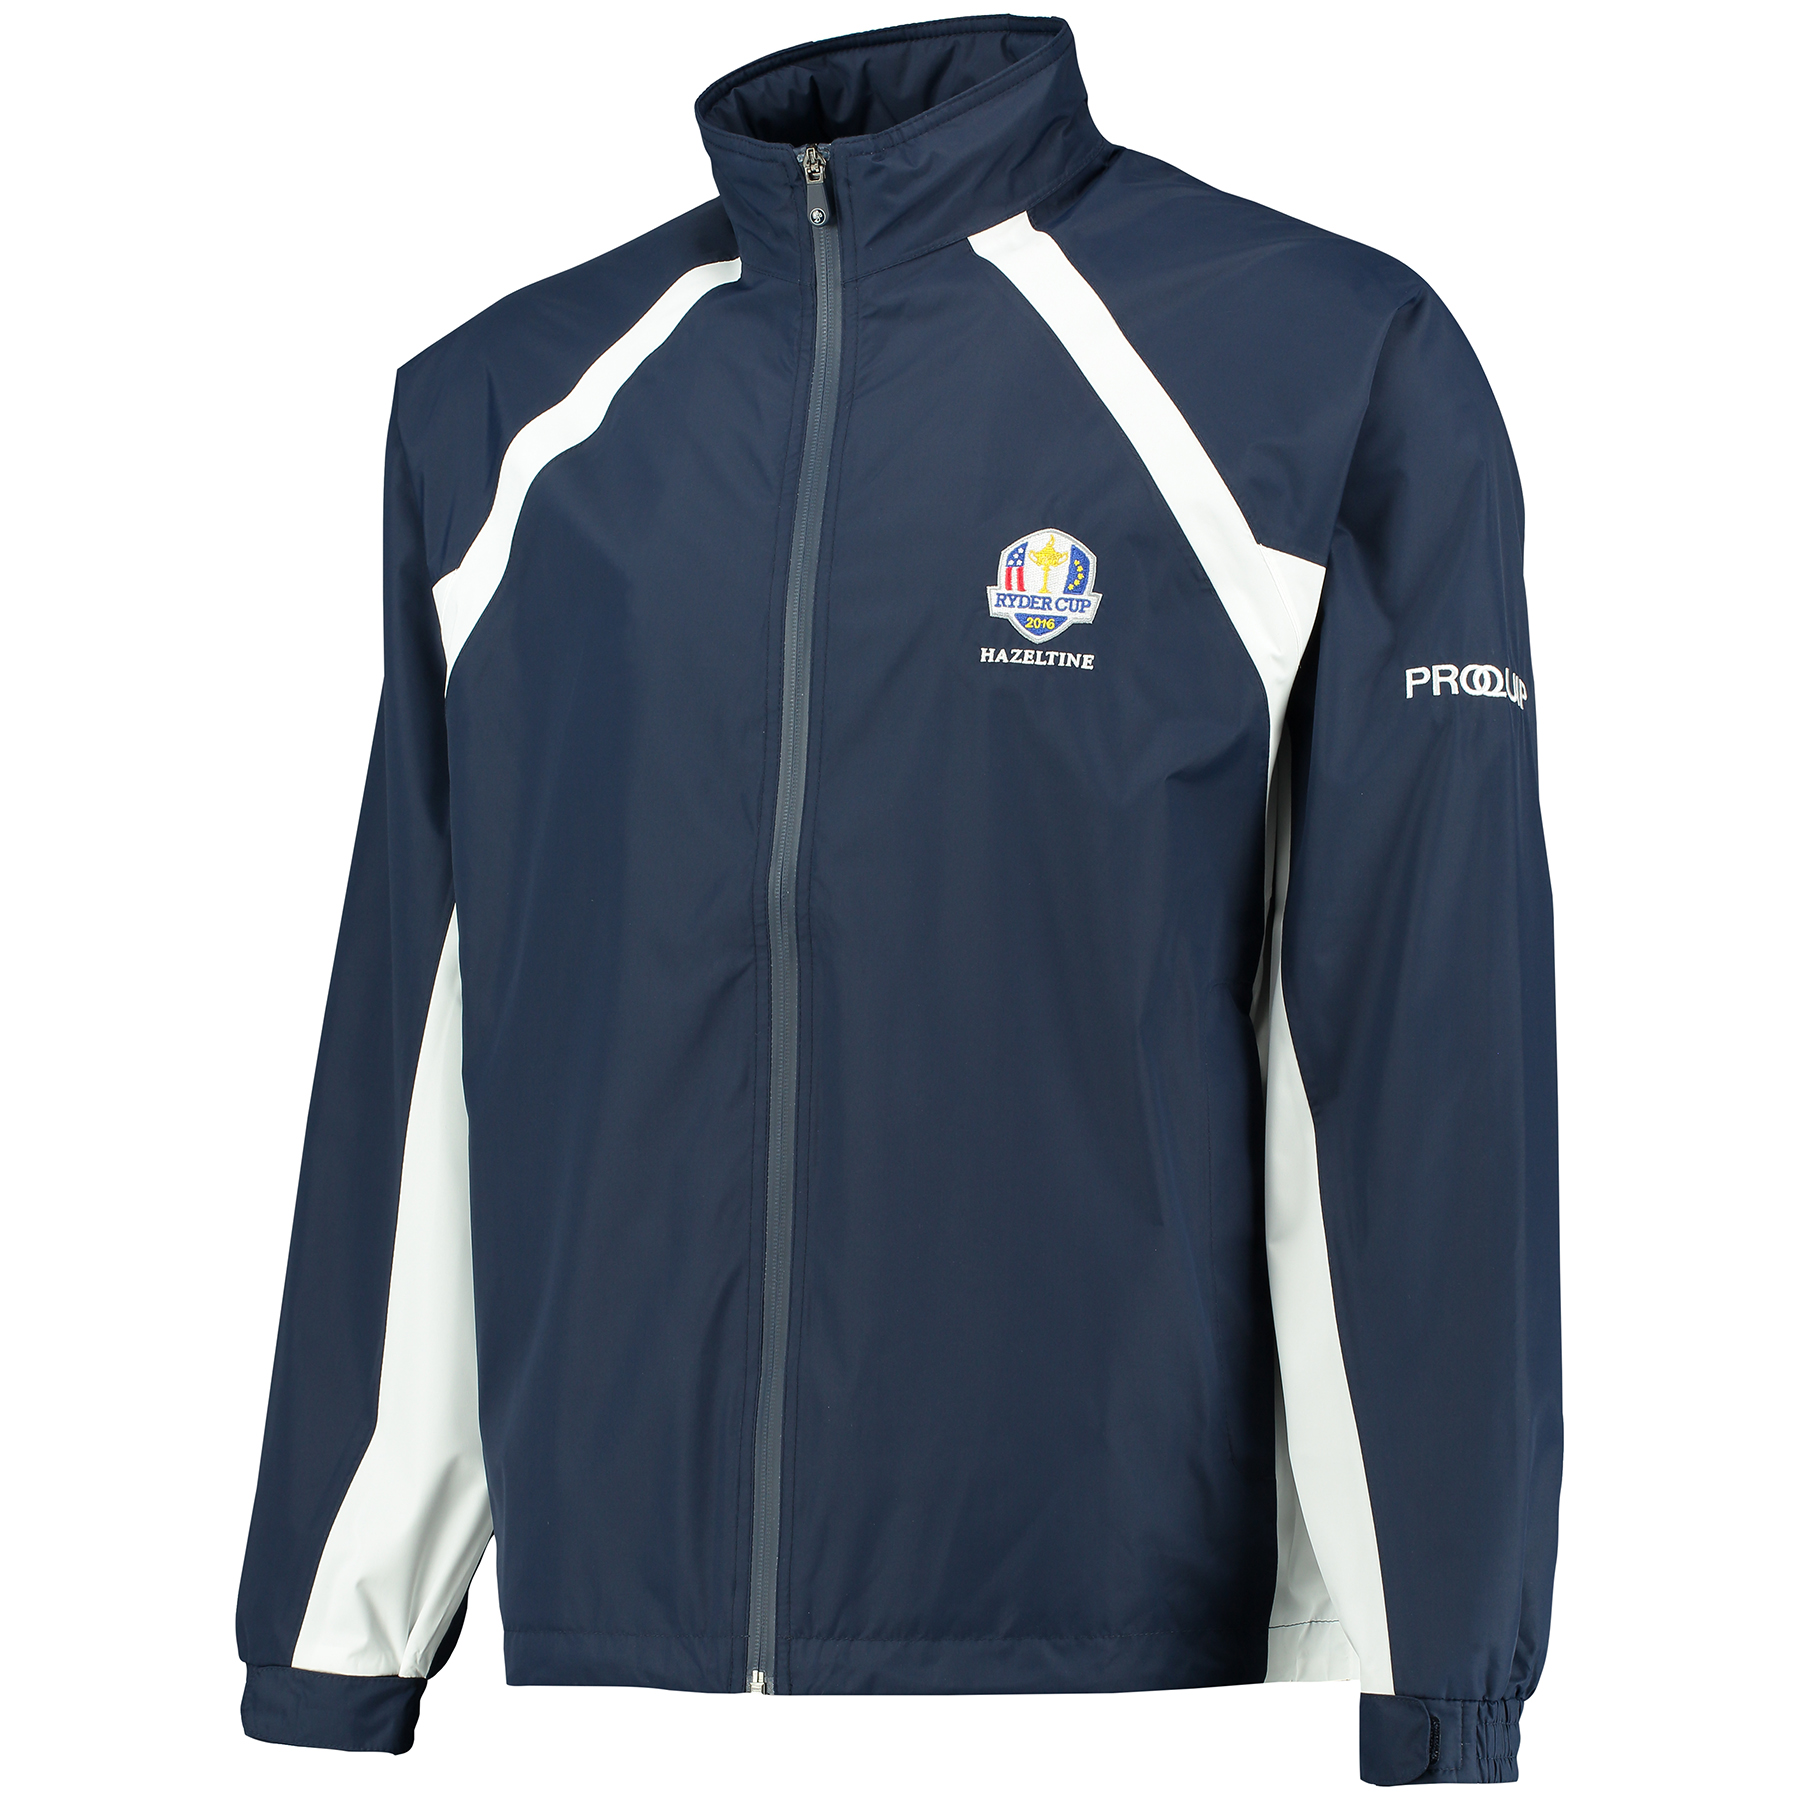 The 2016 Ryder Cup Proquip Aquastorm Medinah Waterproof Jacket - Navy/White